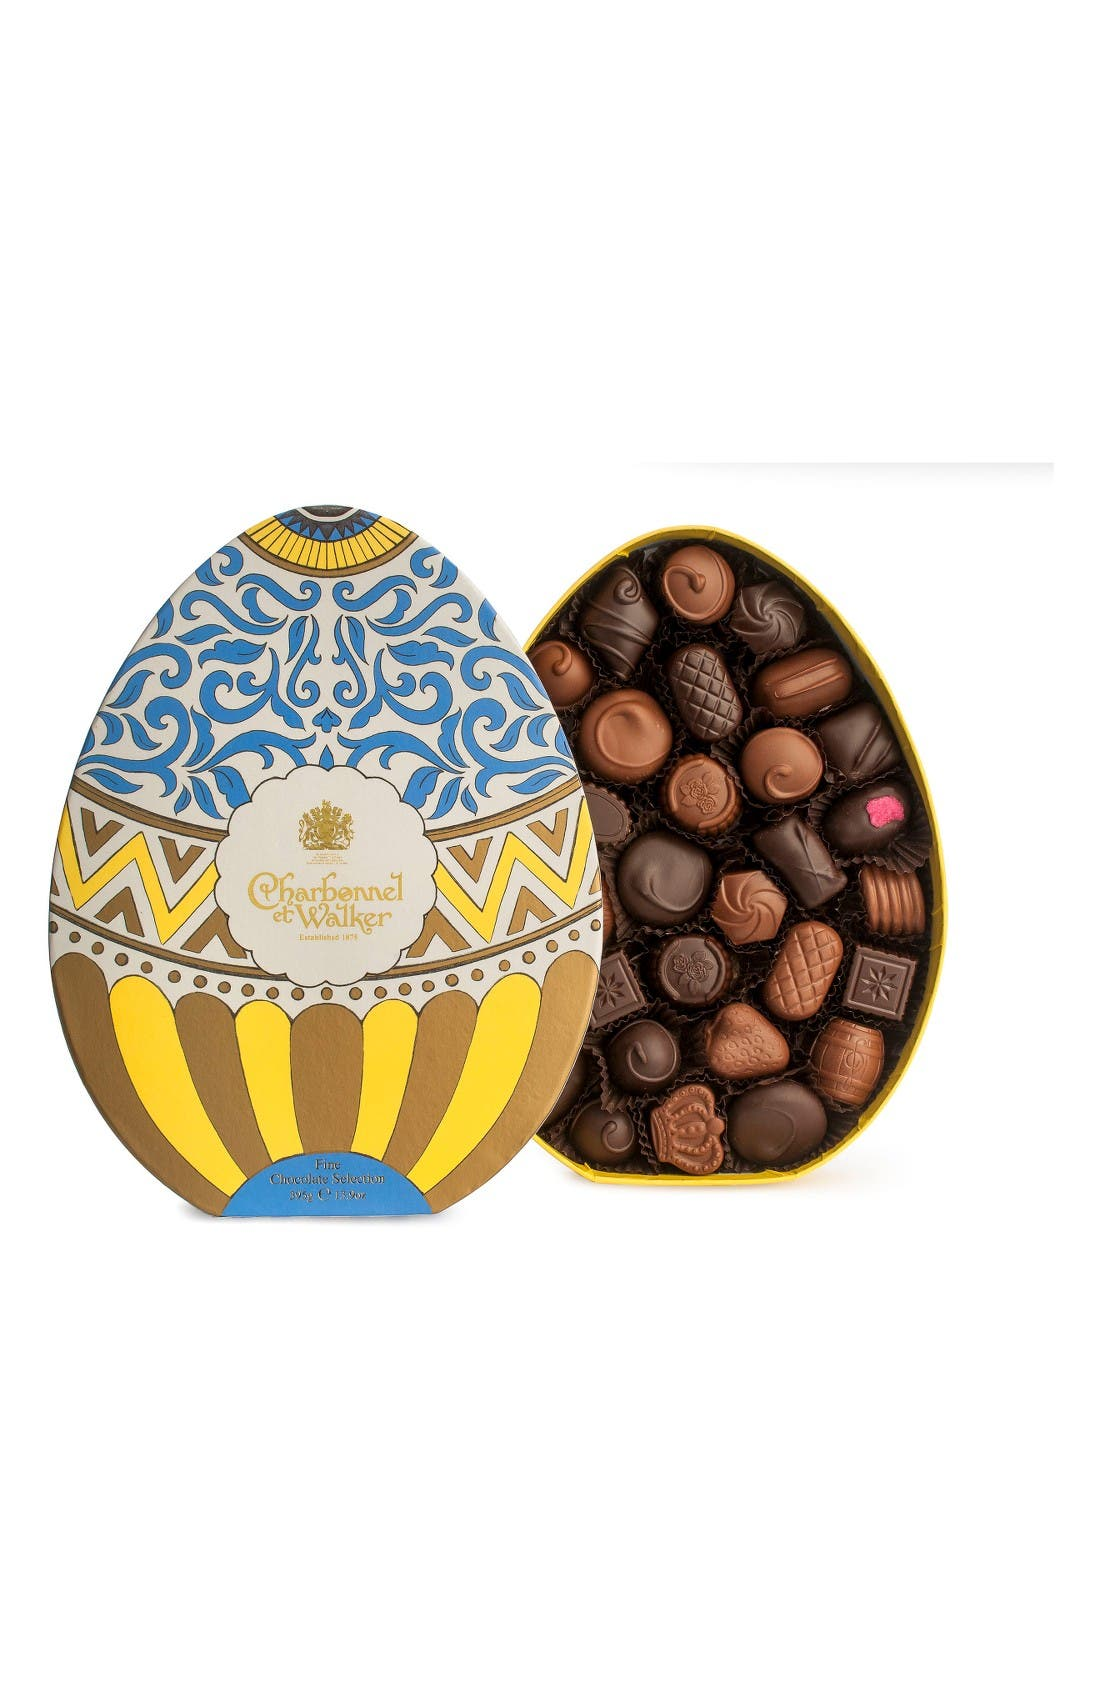 Main Image - Charbonnel et Walker Fine Assorted Chocolates in Egg Shaped Gift Box